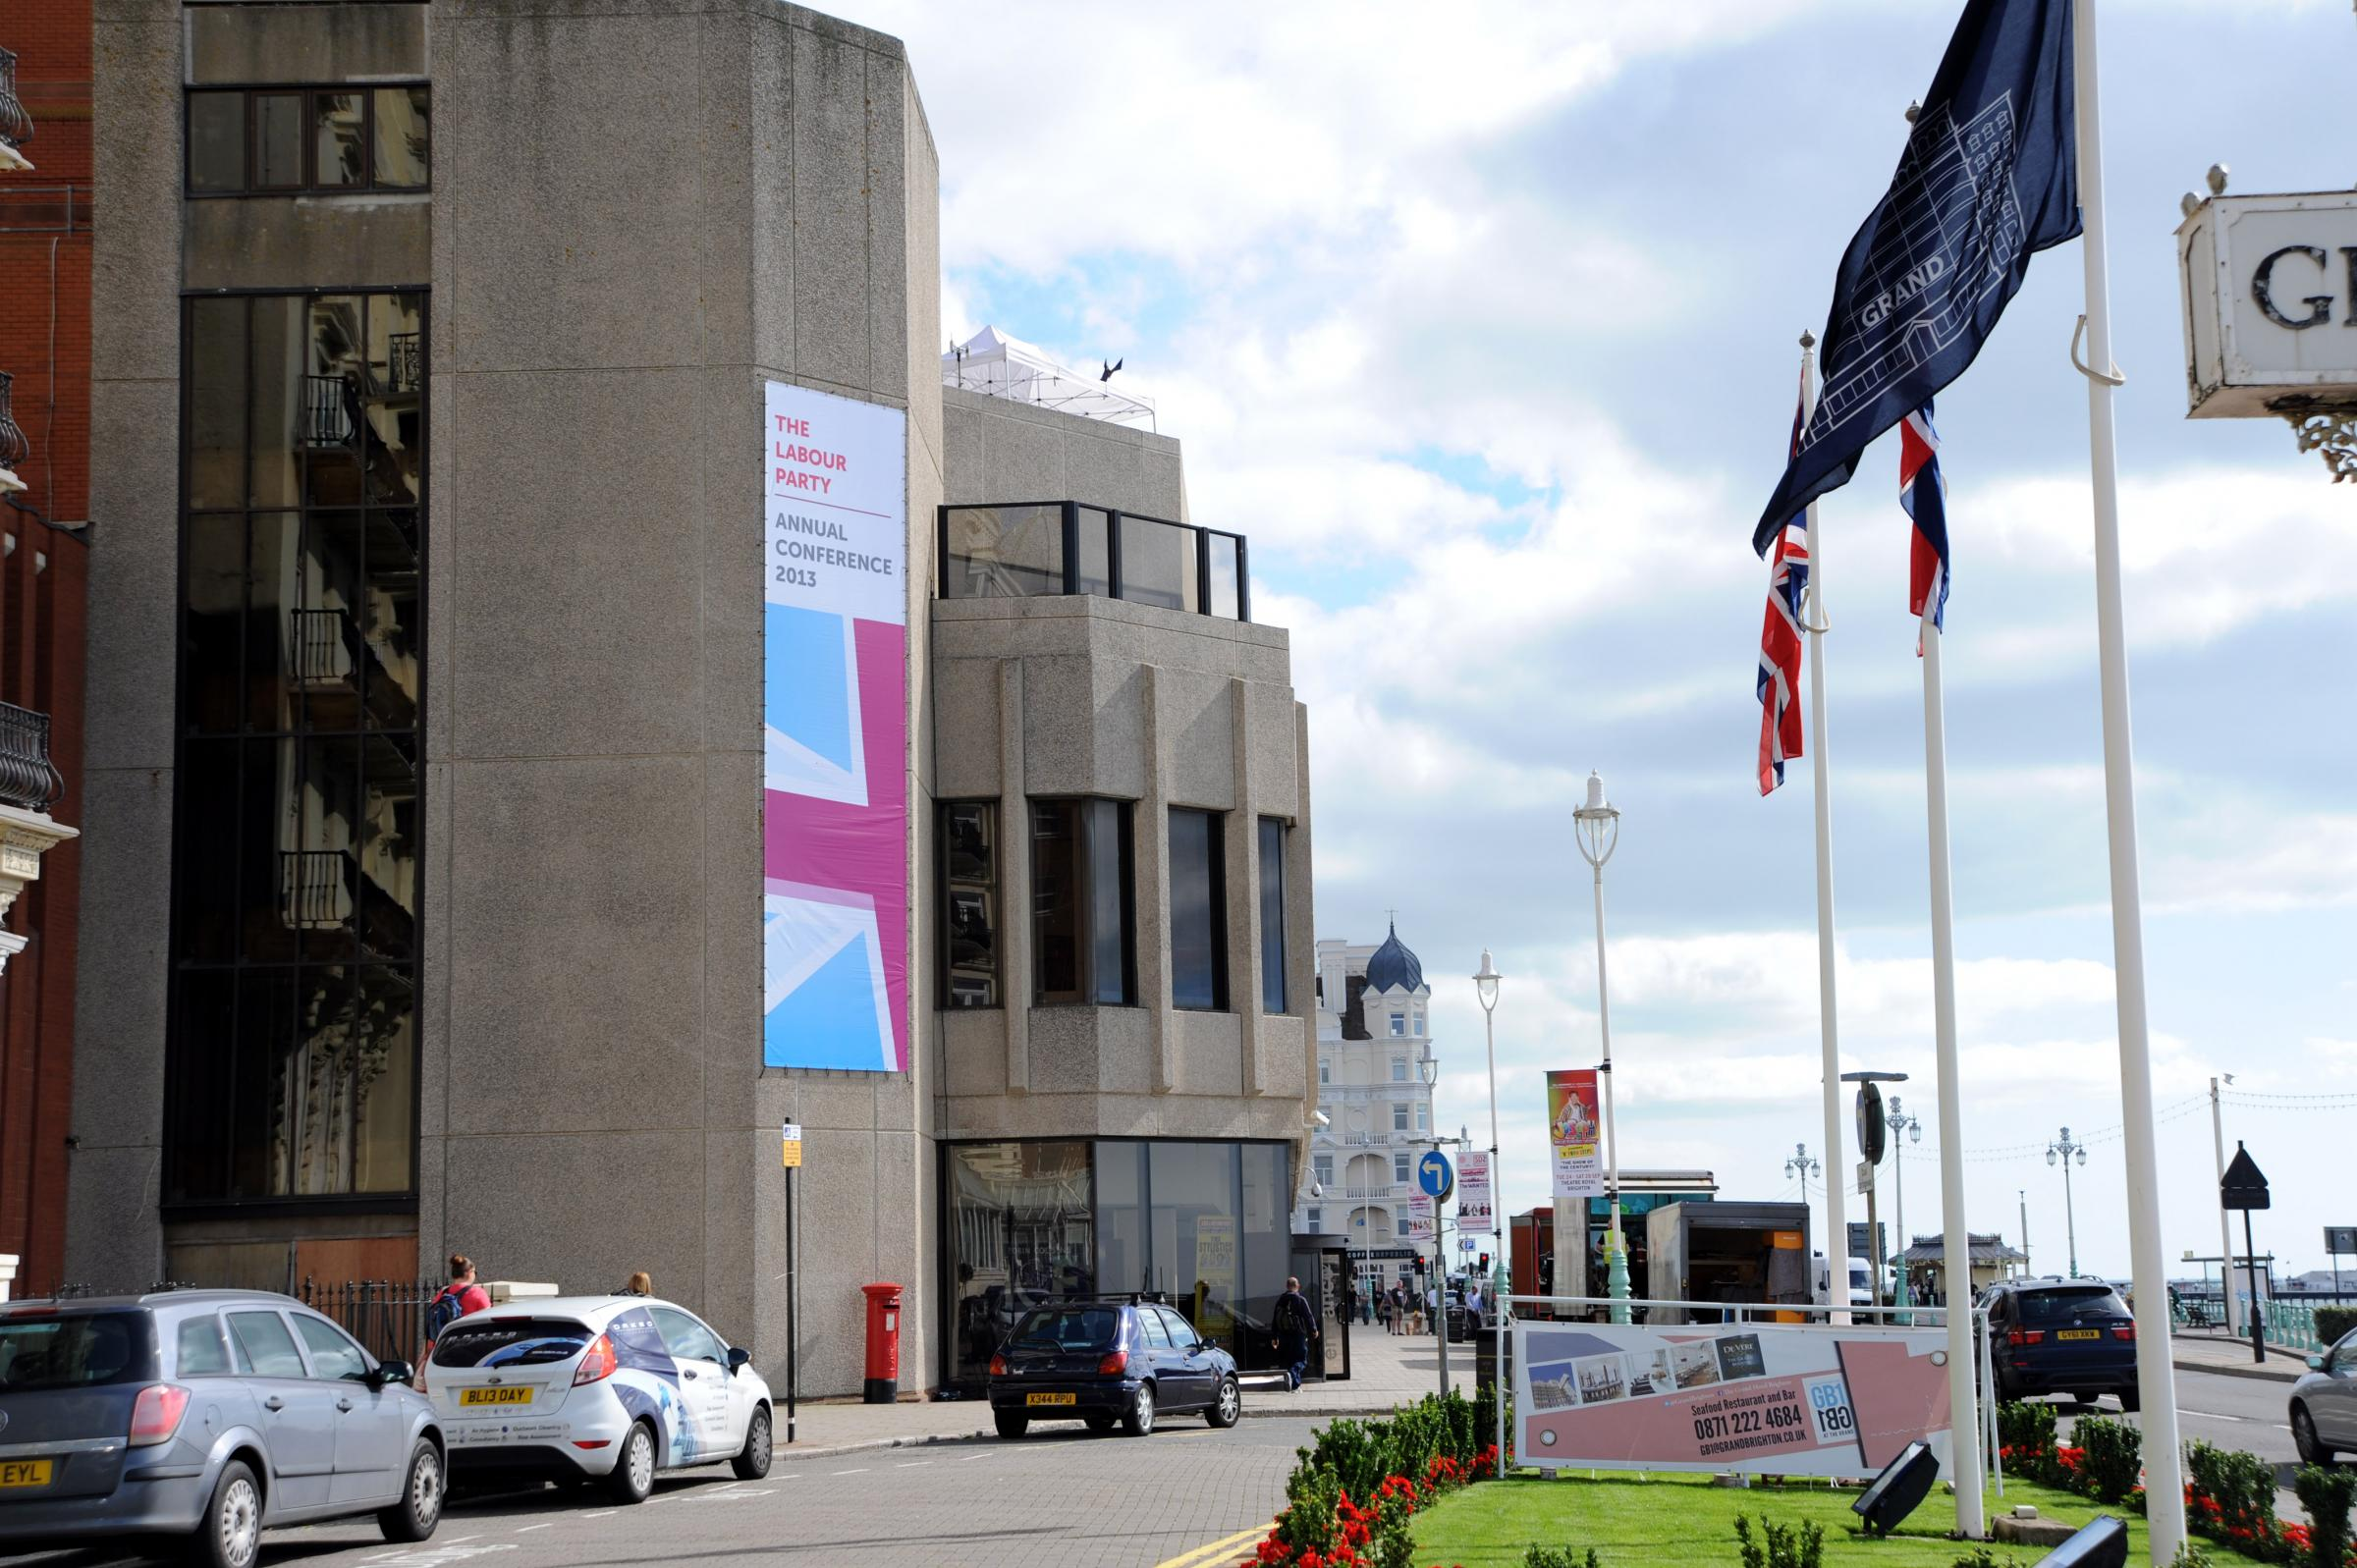 New conference to bring £3.5 million economic boost